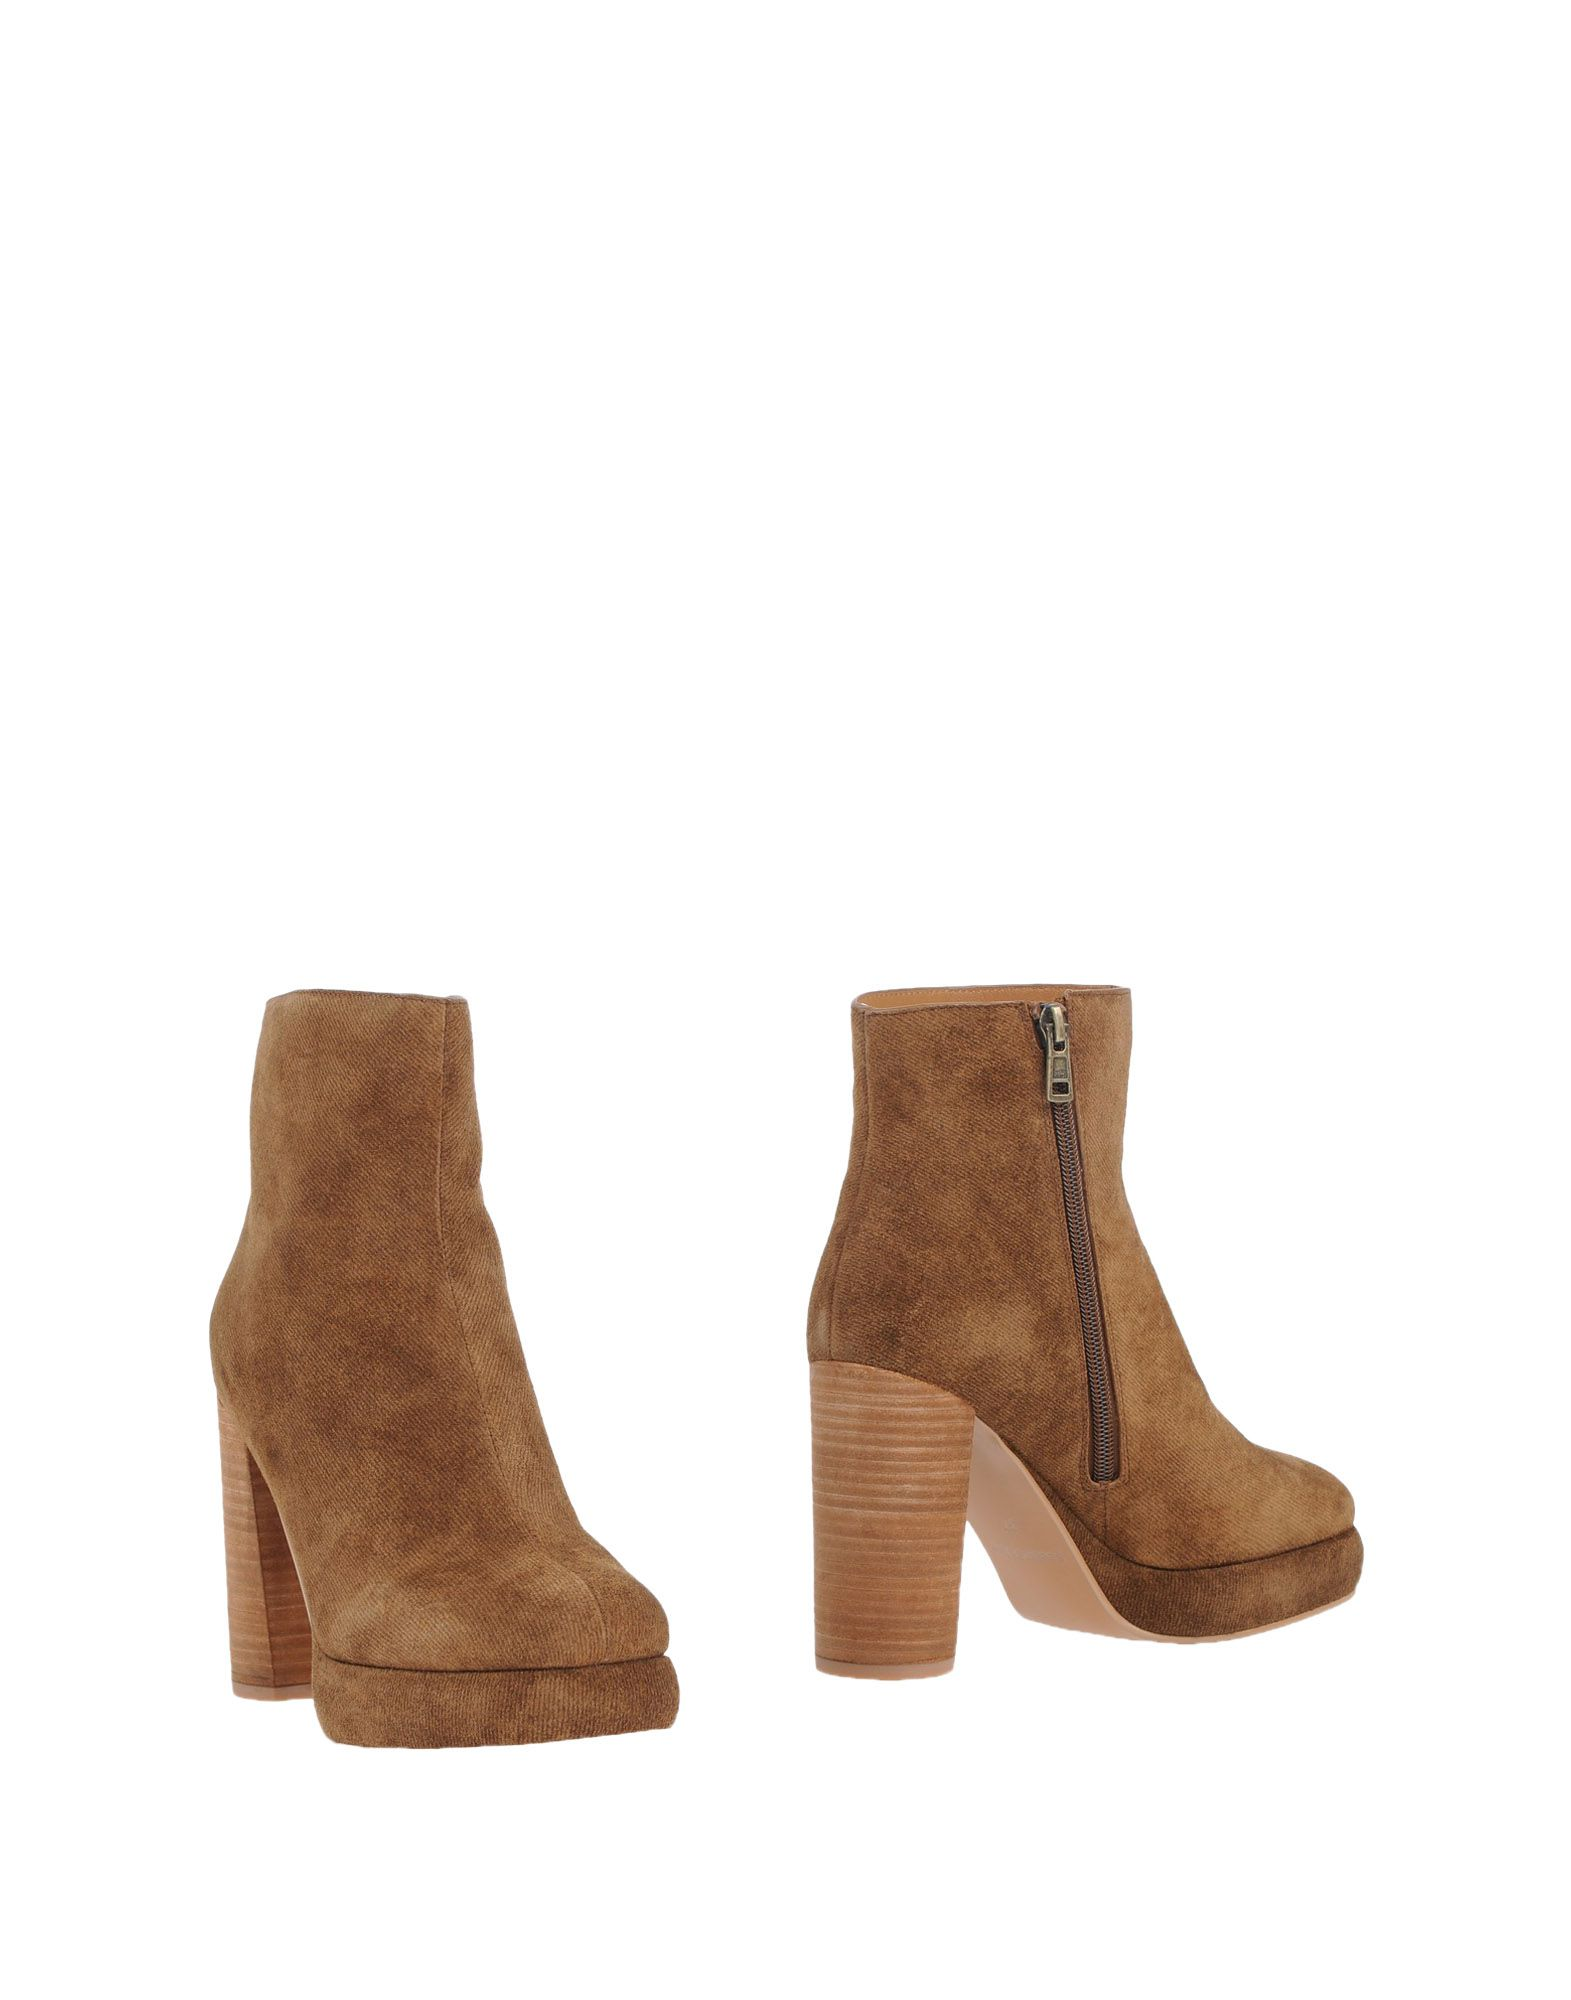 Bottine See By Chloé Femme - Bottines See By Chloé sur